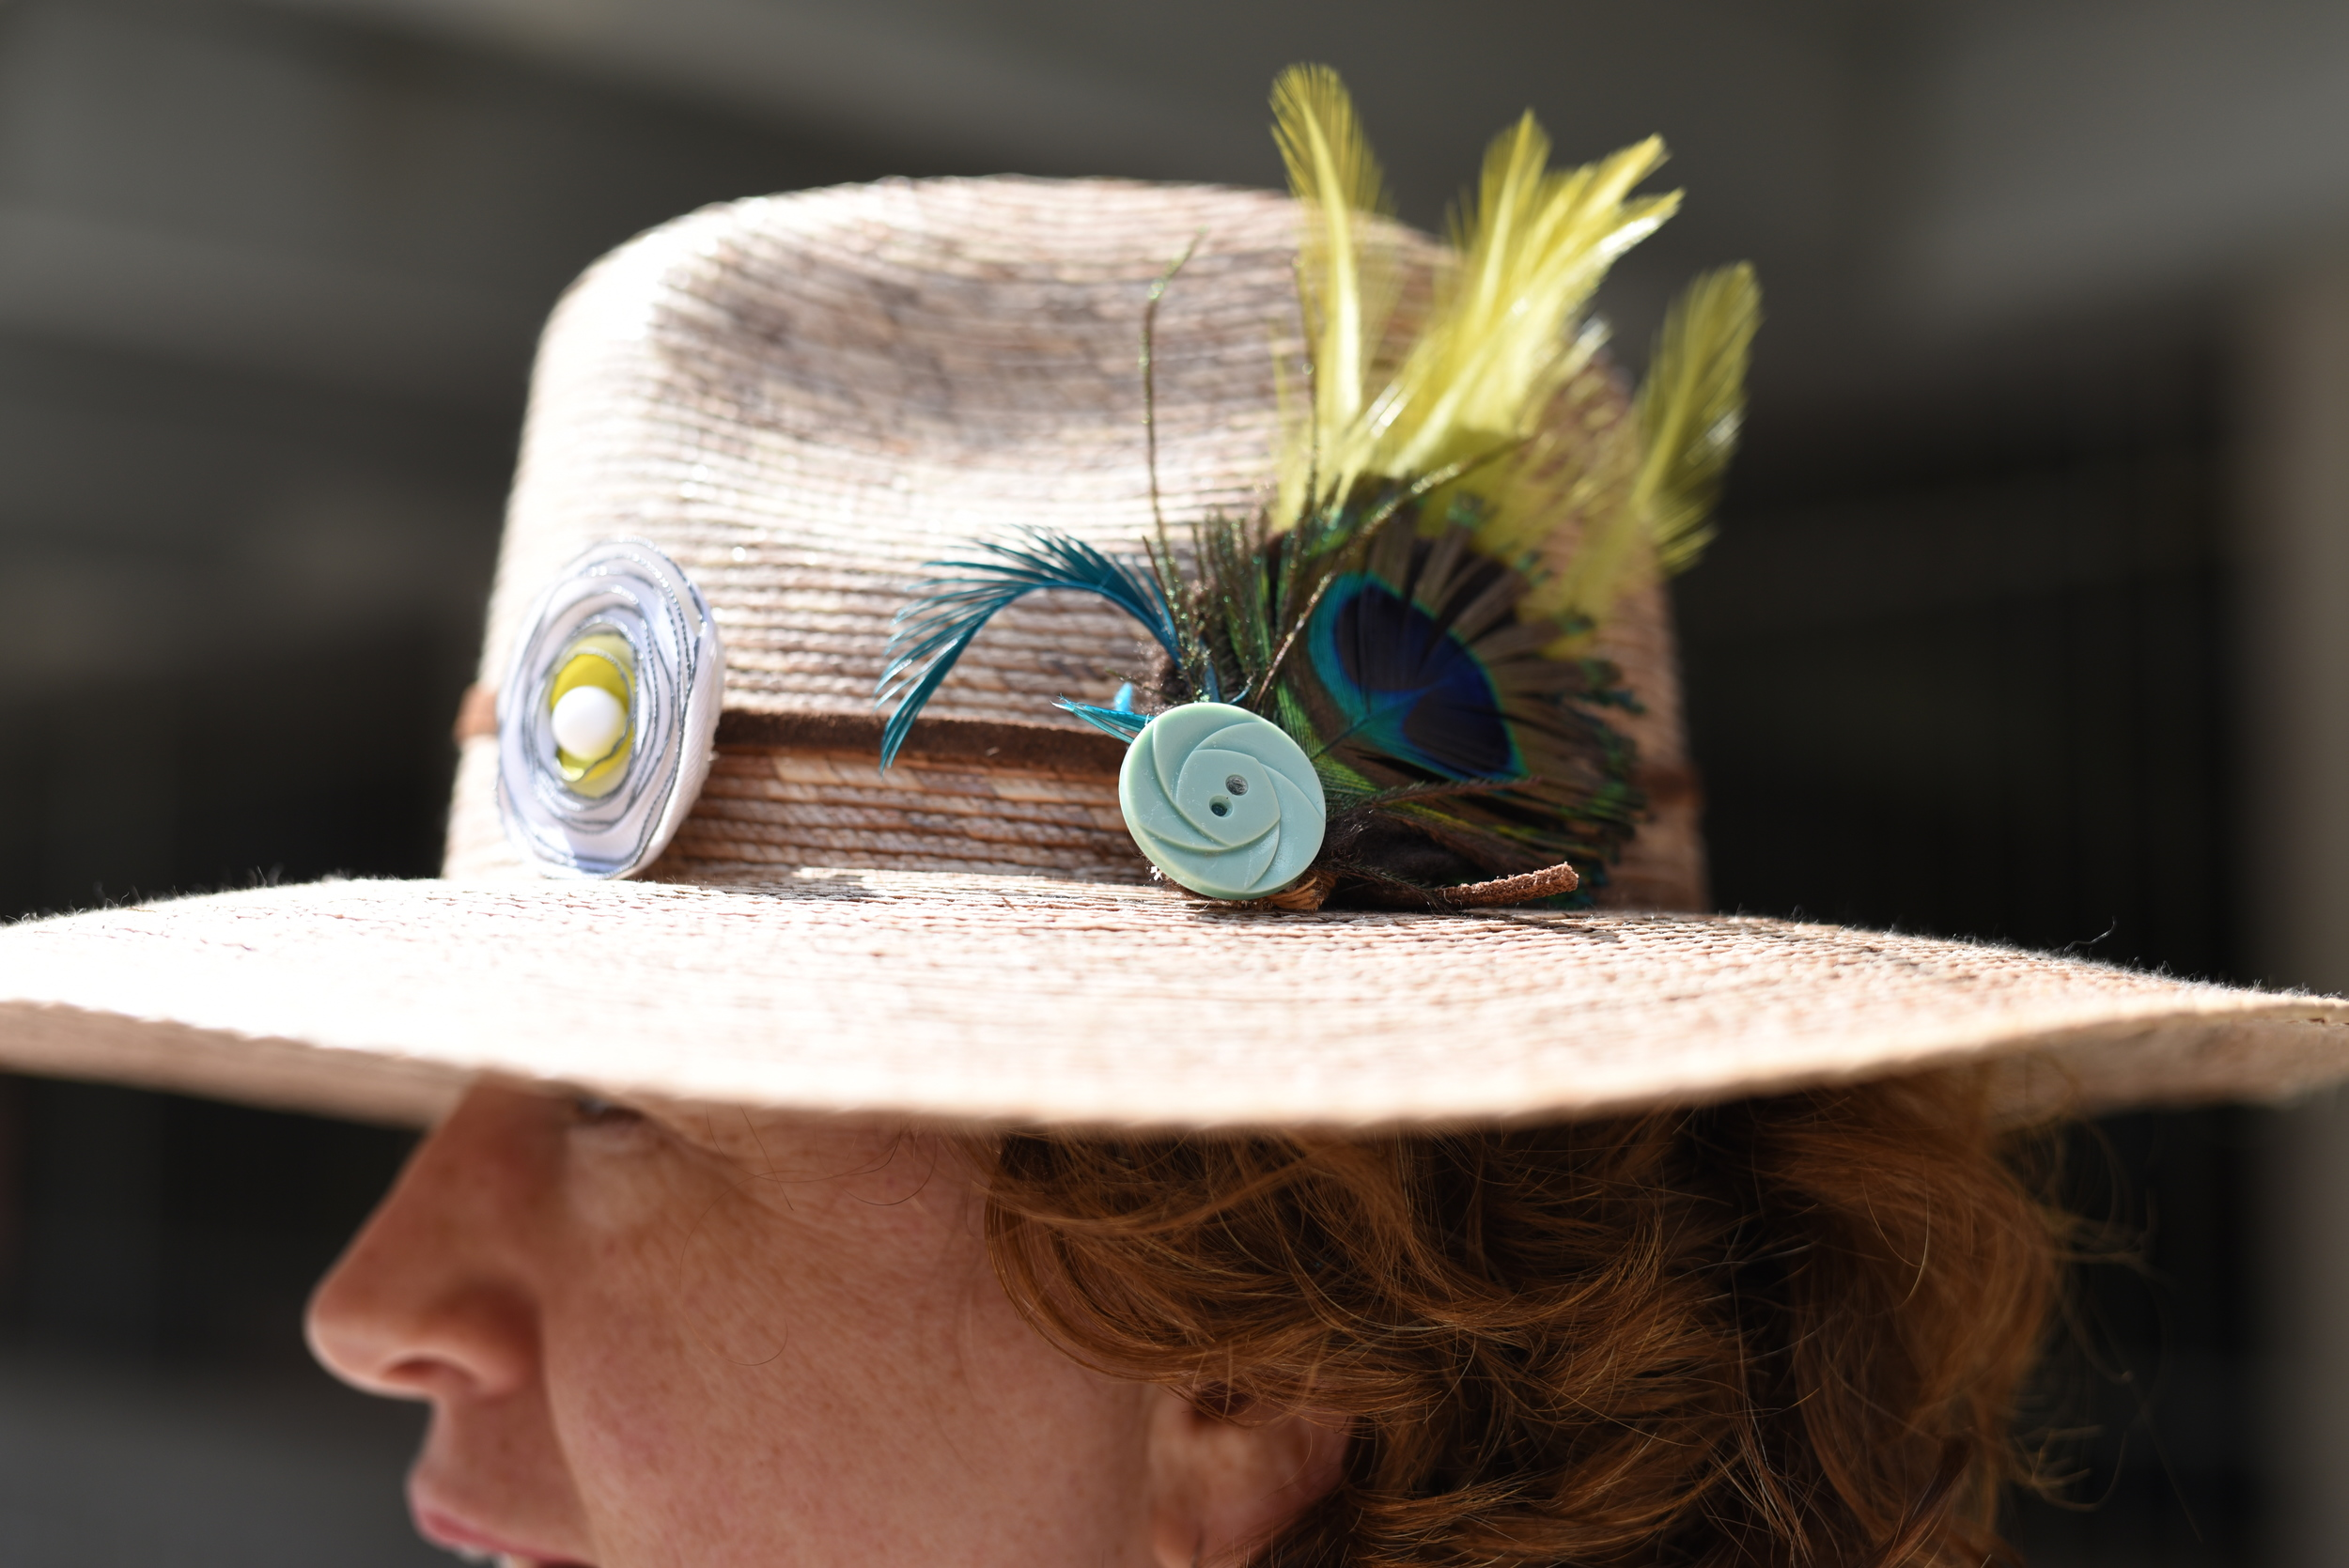 She makes hats. But not this one. She just added the peacock feather to this one. But if you want to see her awesome creations, go to  www.tinakite.com.